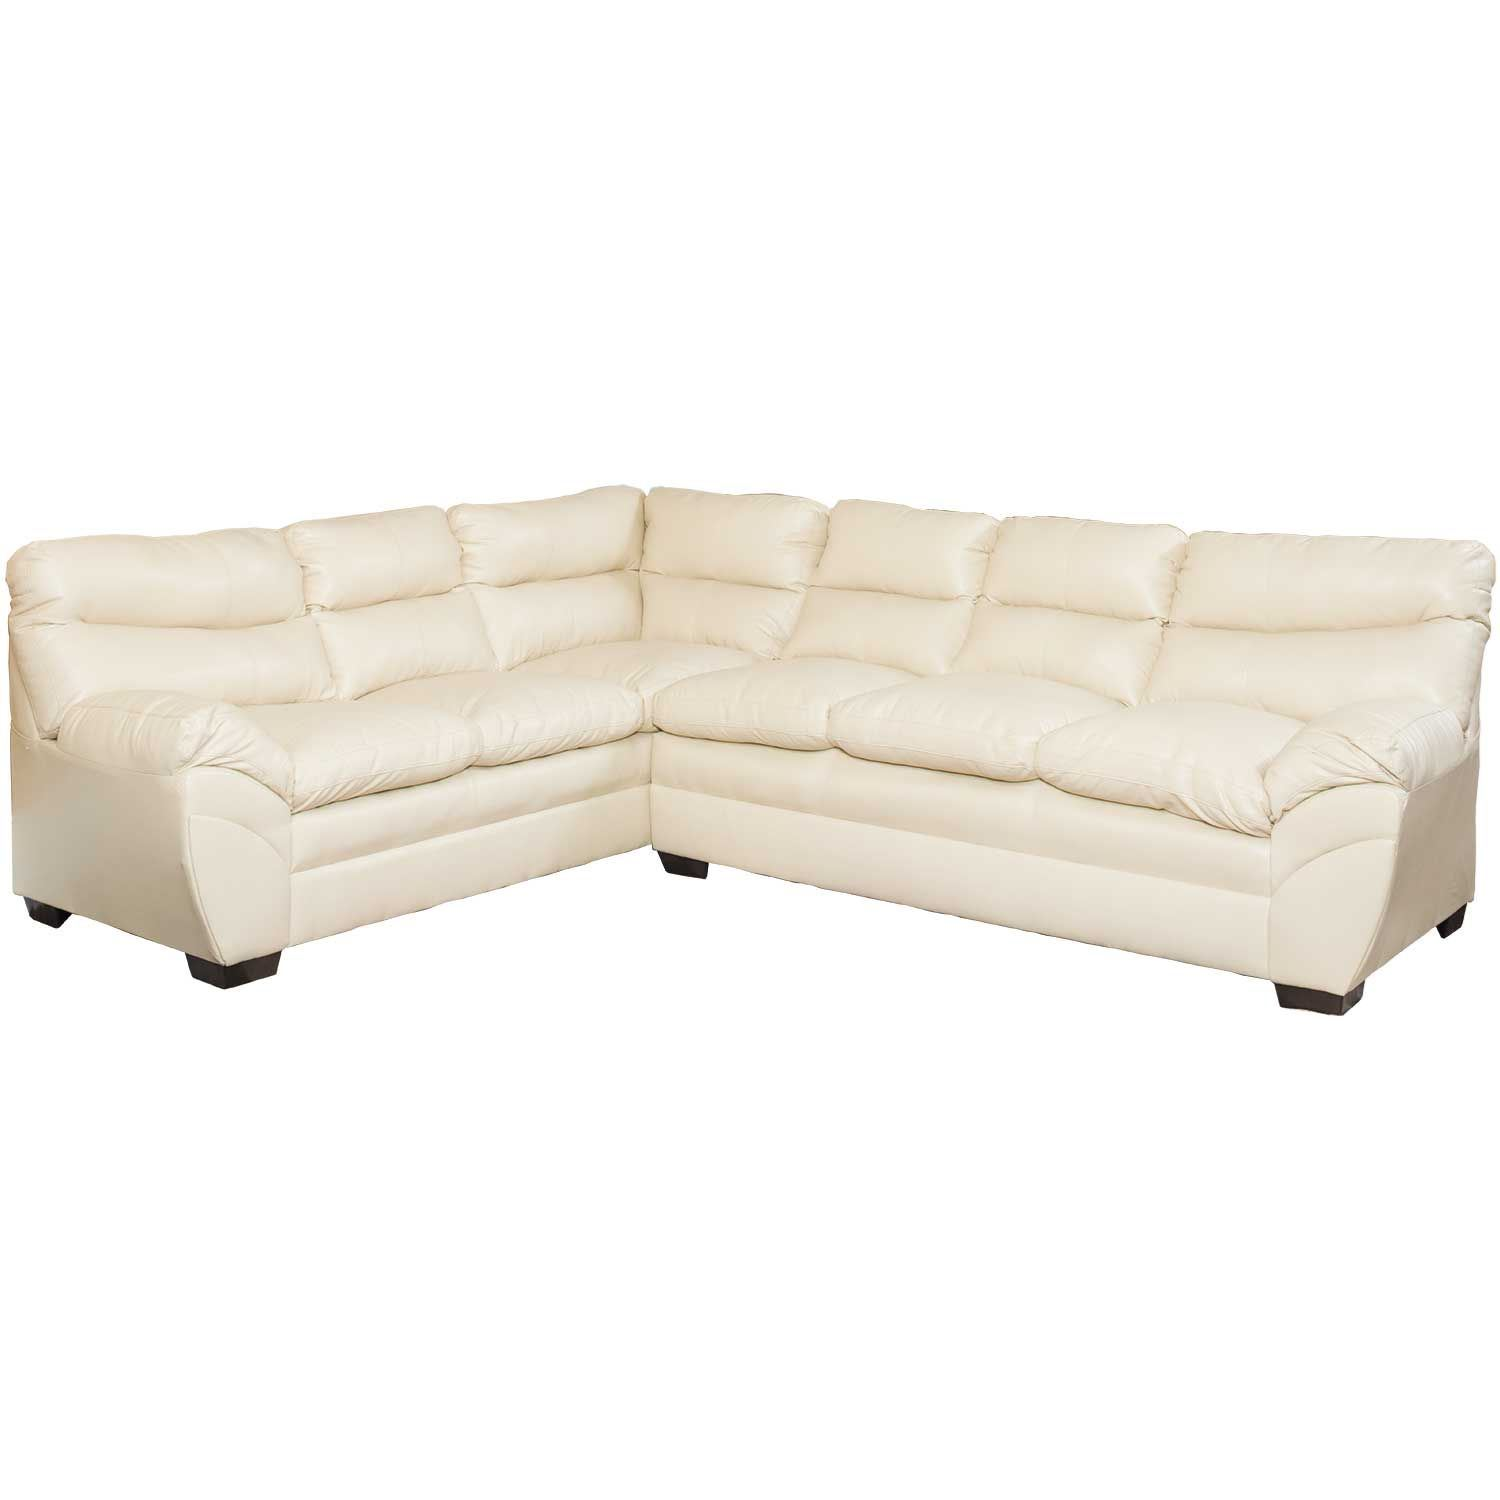 - Soho 2 Piece Cream Bonded Leather Sectional 9515 RS LS CREAM